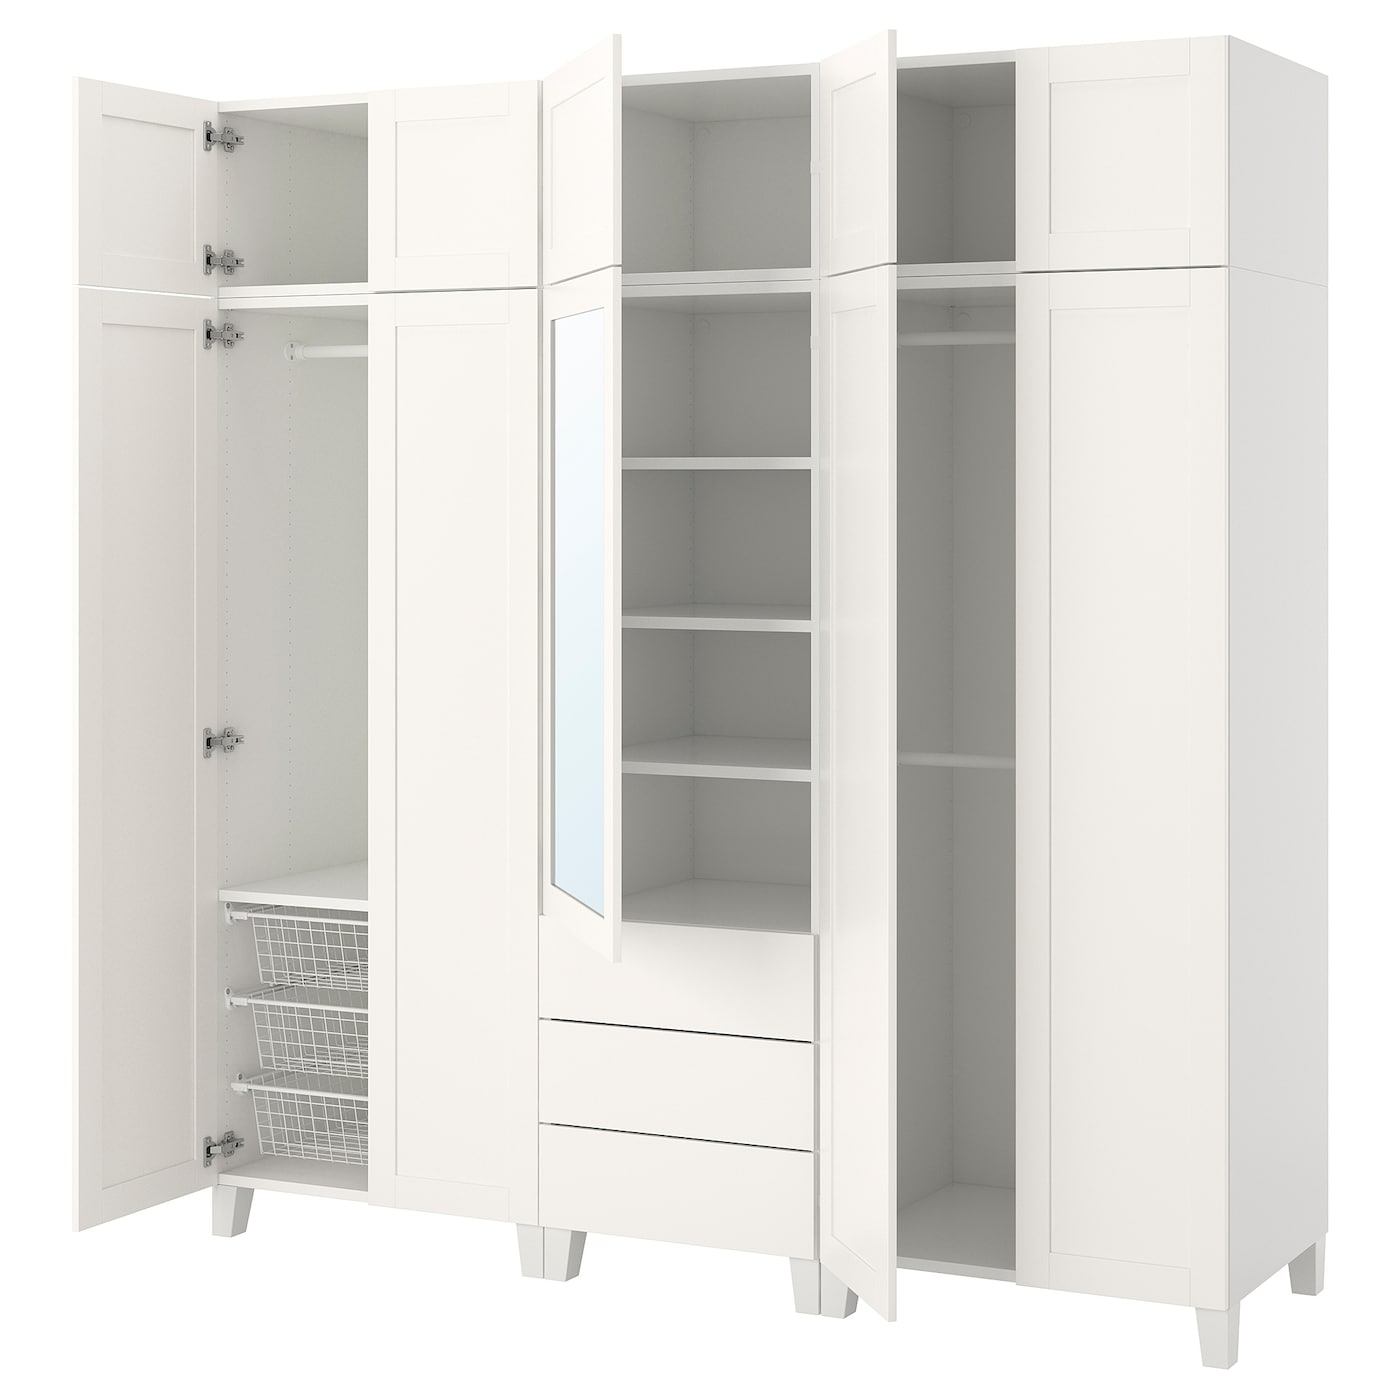 platsa wardrobe white sannidal ridabu 220 x 57 x 231 cm ikea. Black Bedroom Furniture Sets. Home Design Ideas